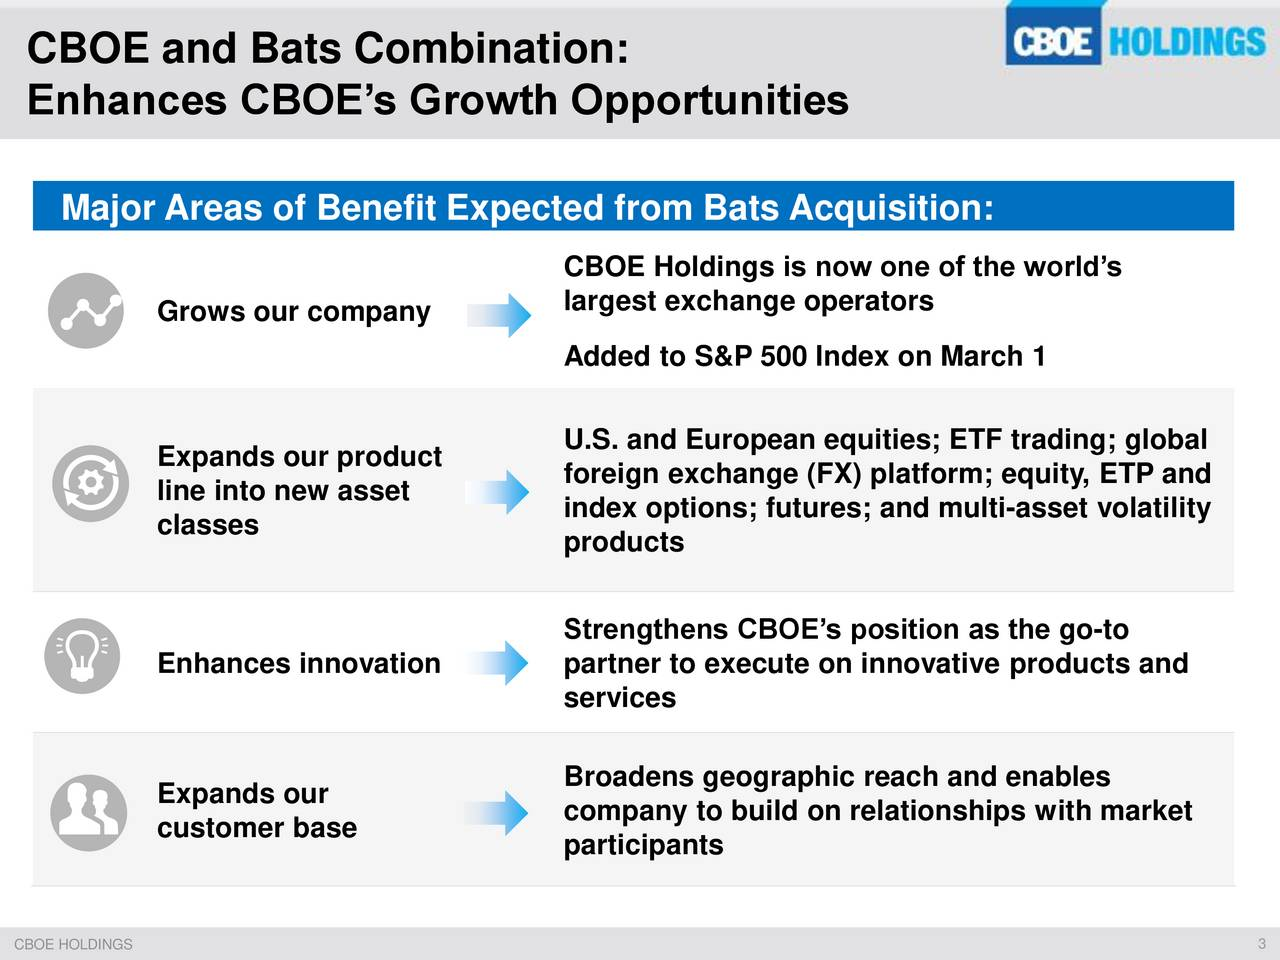 Enhances CBOEs Growth Opportunities Major Areas of Benefit Expected from Bats Acquisition: CBOE Holdings is now one of the worlds largest exchange operators Grows our company Added to S&P 500 Index on March 1 U.S. and European equities; ETF trading; global Expands our product line into new asset foreign exchange (FX) platform; equity, ETP and classes index options; futures; and multi-asset volatility products Strengthens CBOEs position as the go-to Enhances innovation partner to execute on innovative products and services Expands our Broadens geographic reach and enables company to build on relationships with market customer base participants